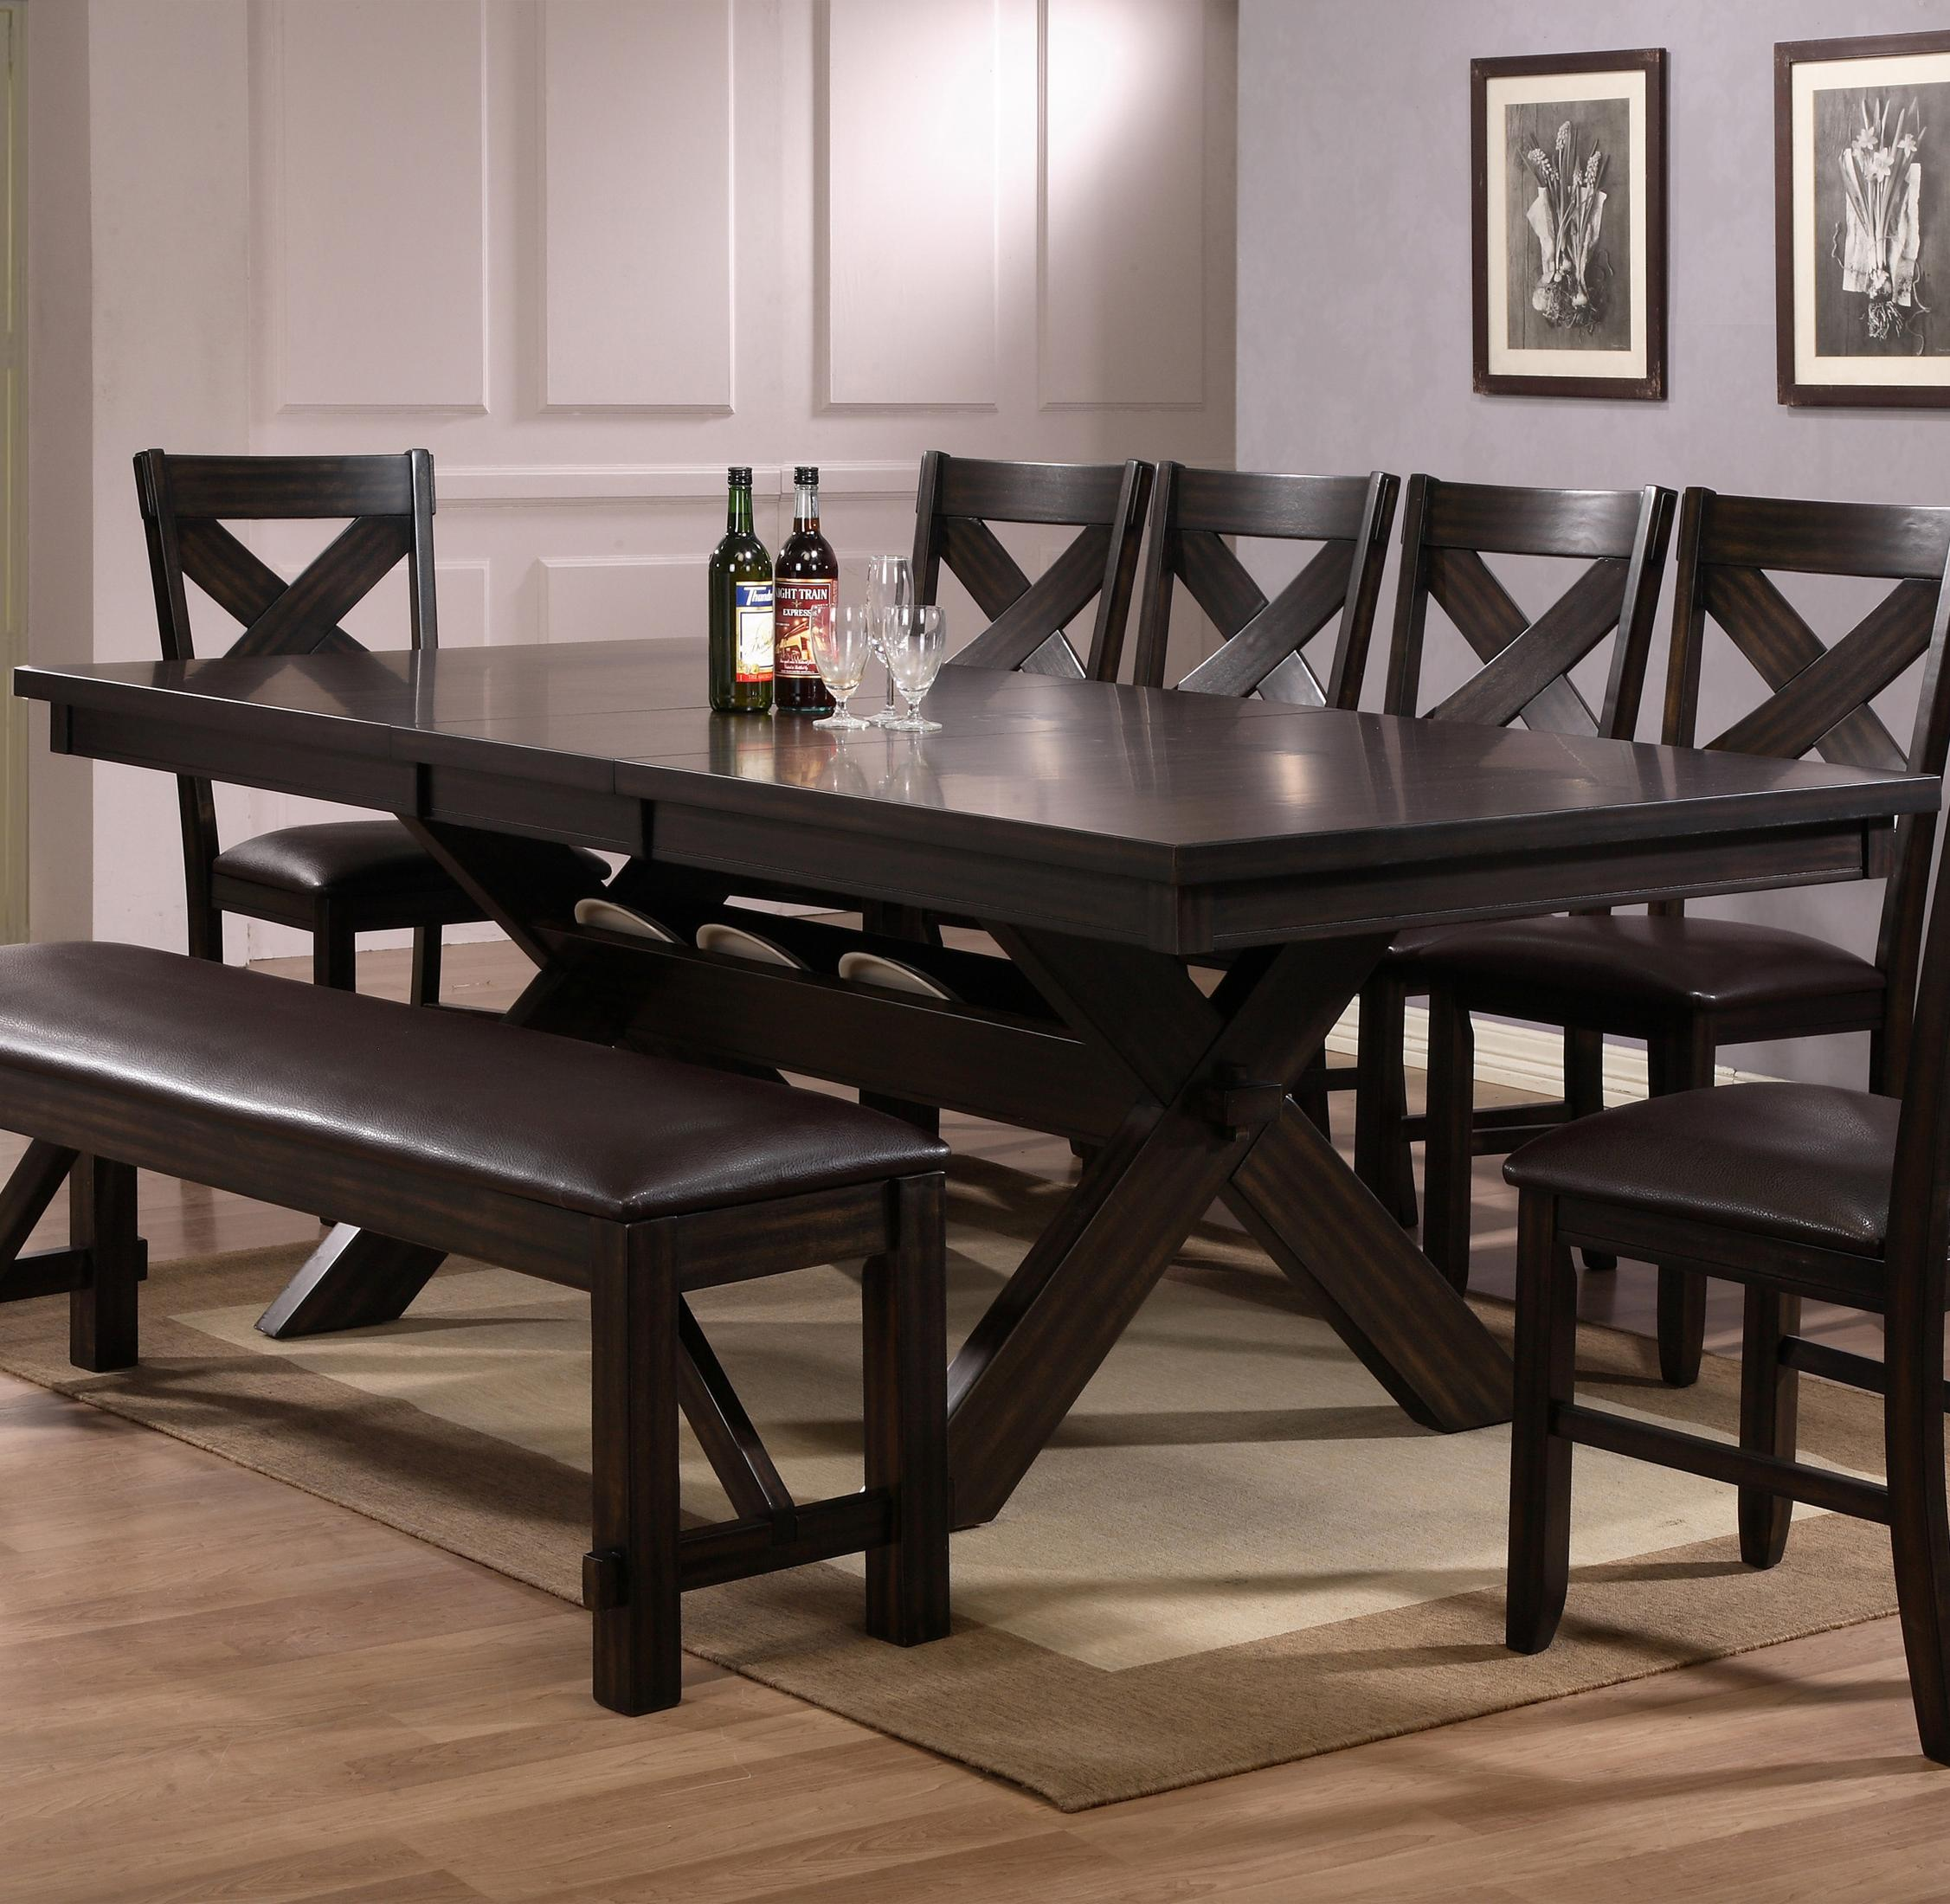 Havana Dining Table by Crown Mark at Northeast Factory Direct